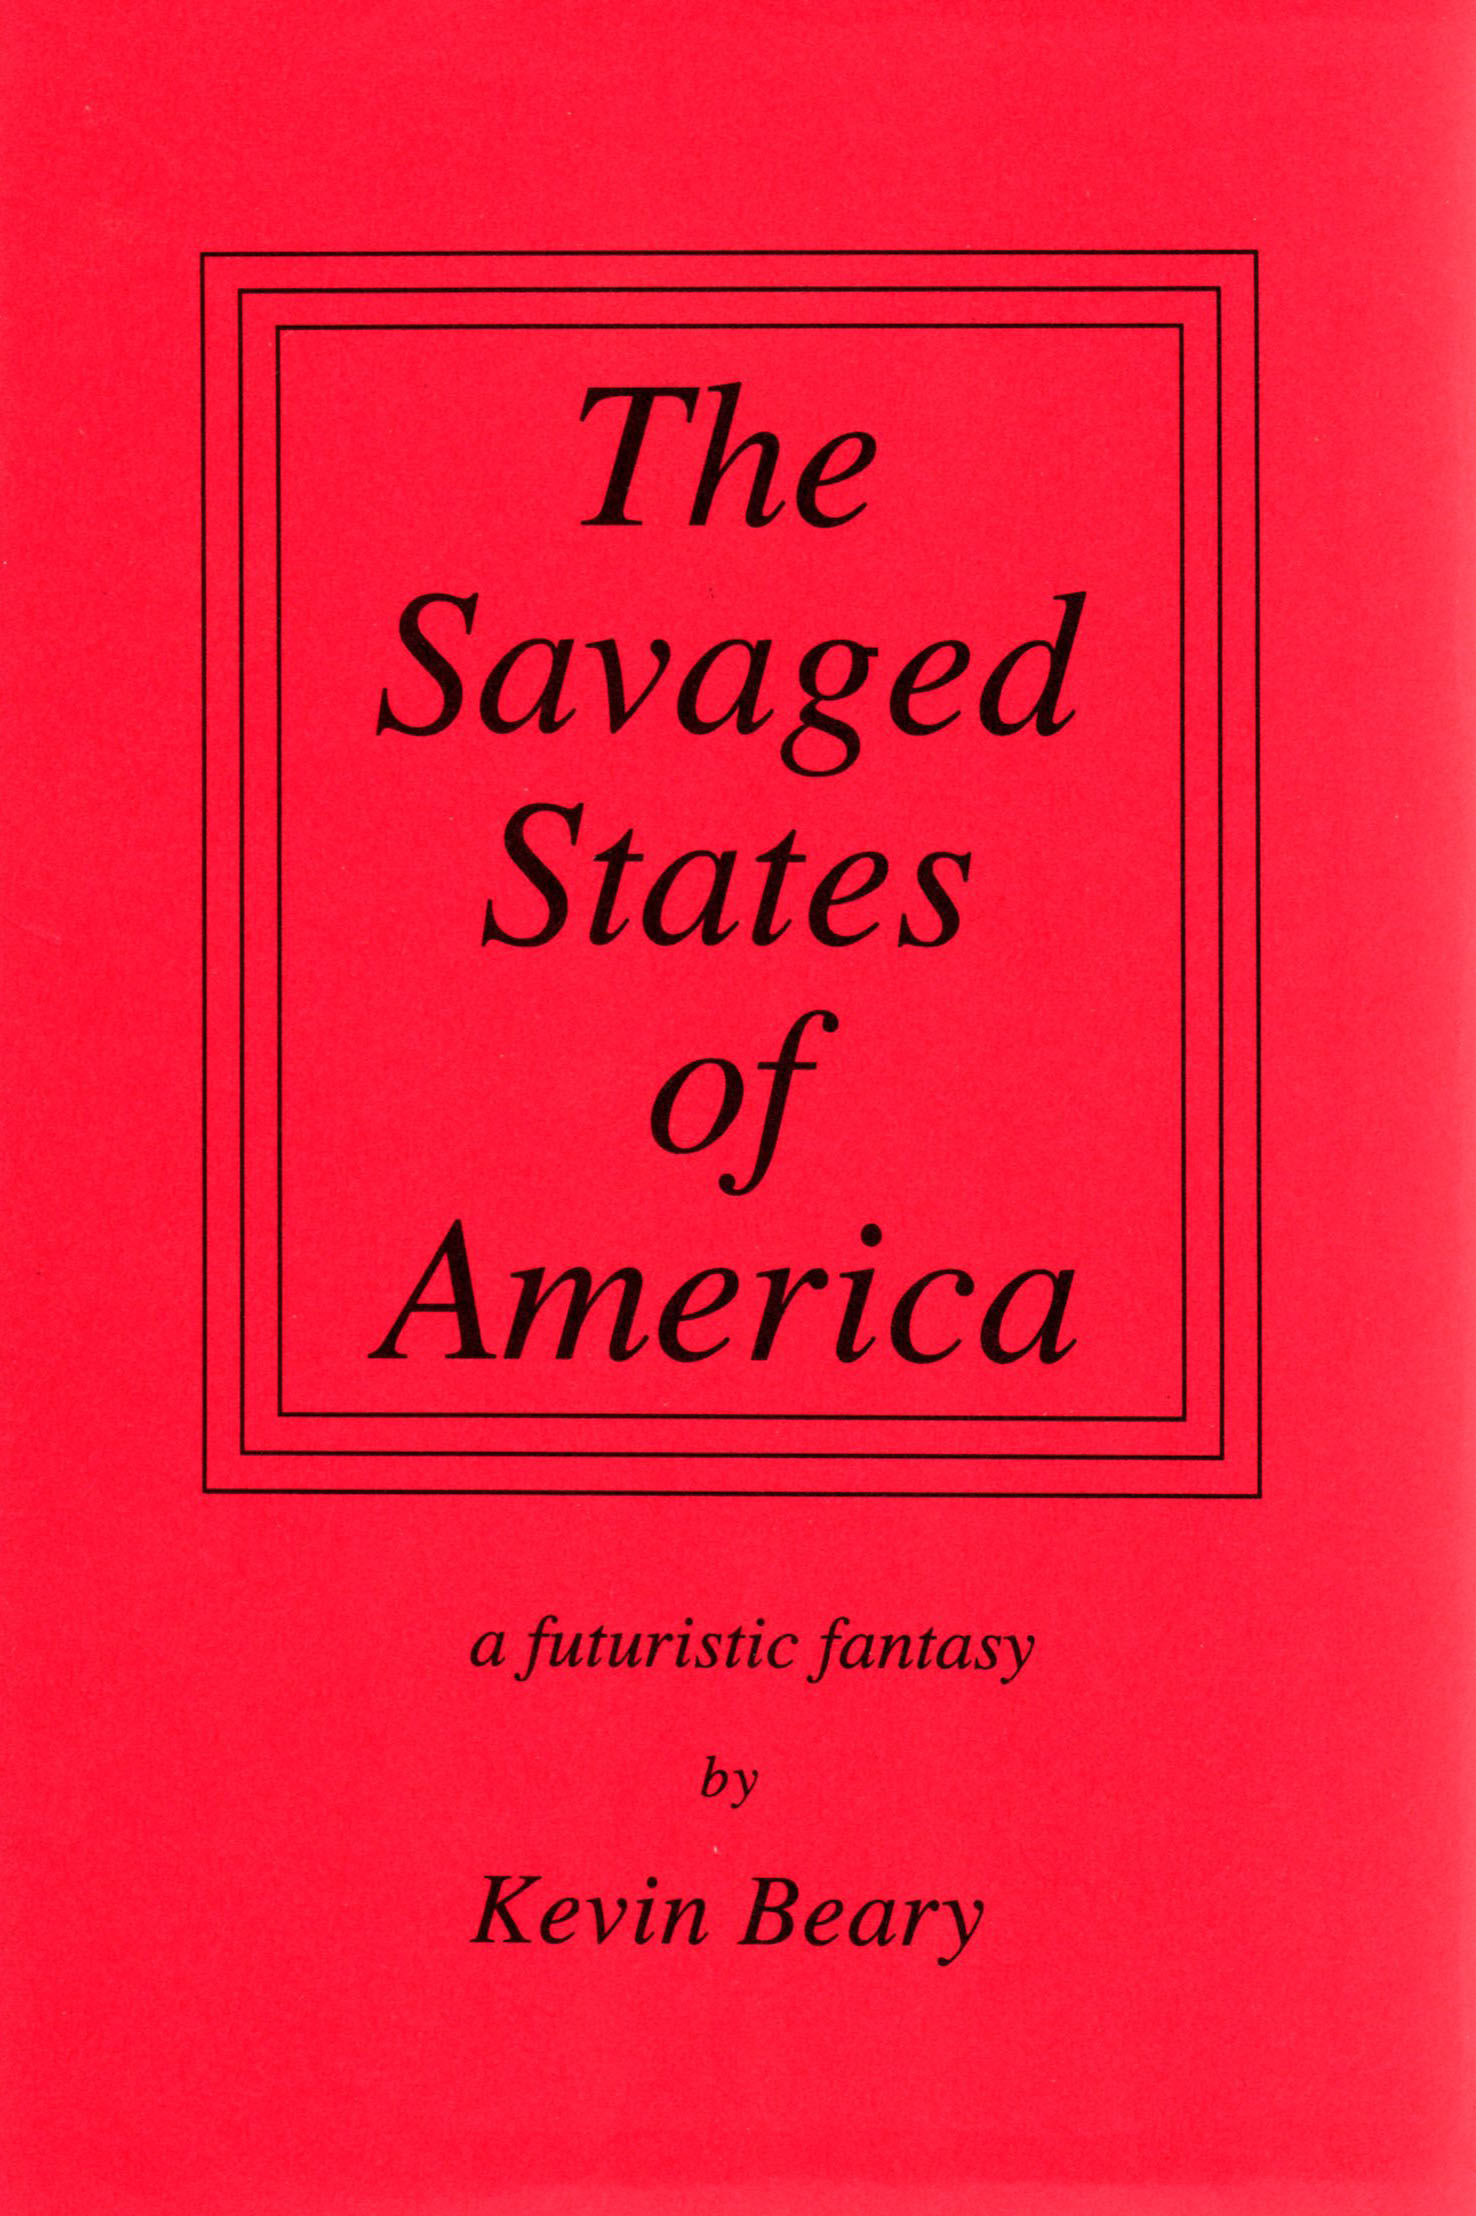 The Savaged States of America: A Futuristic Fantasy